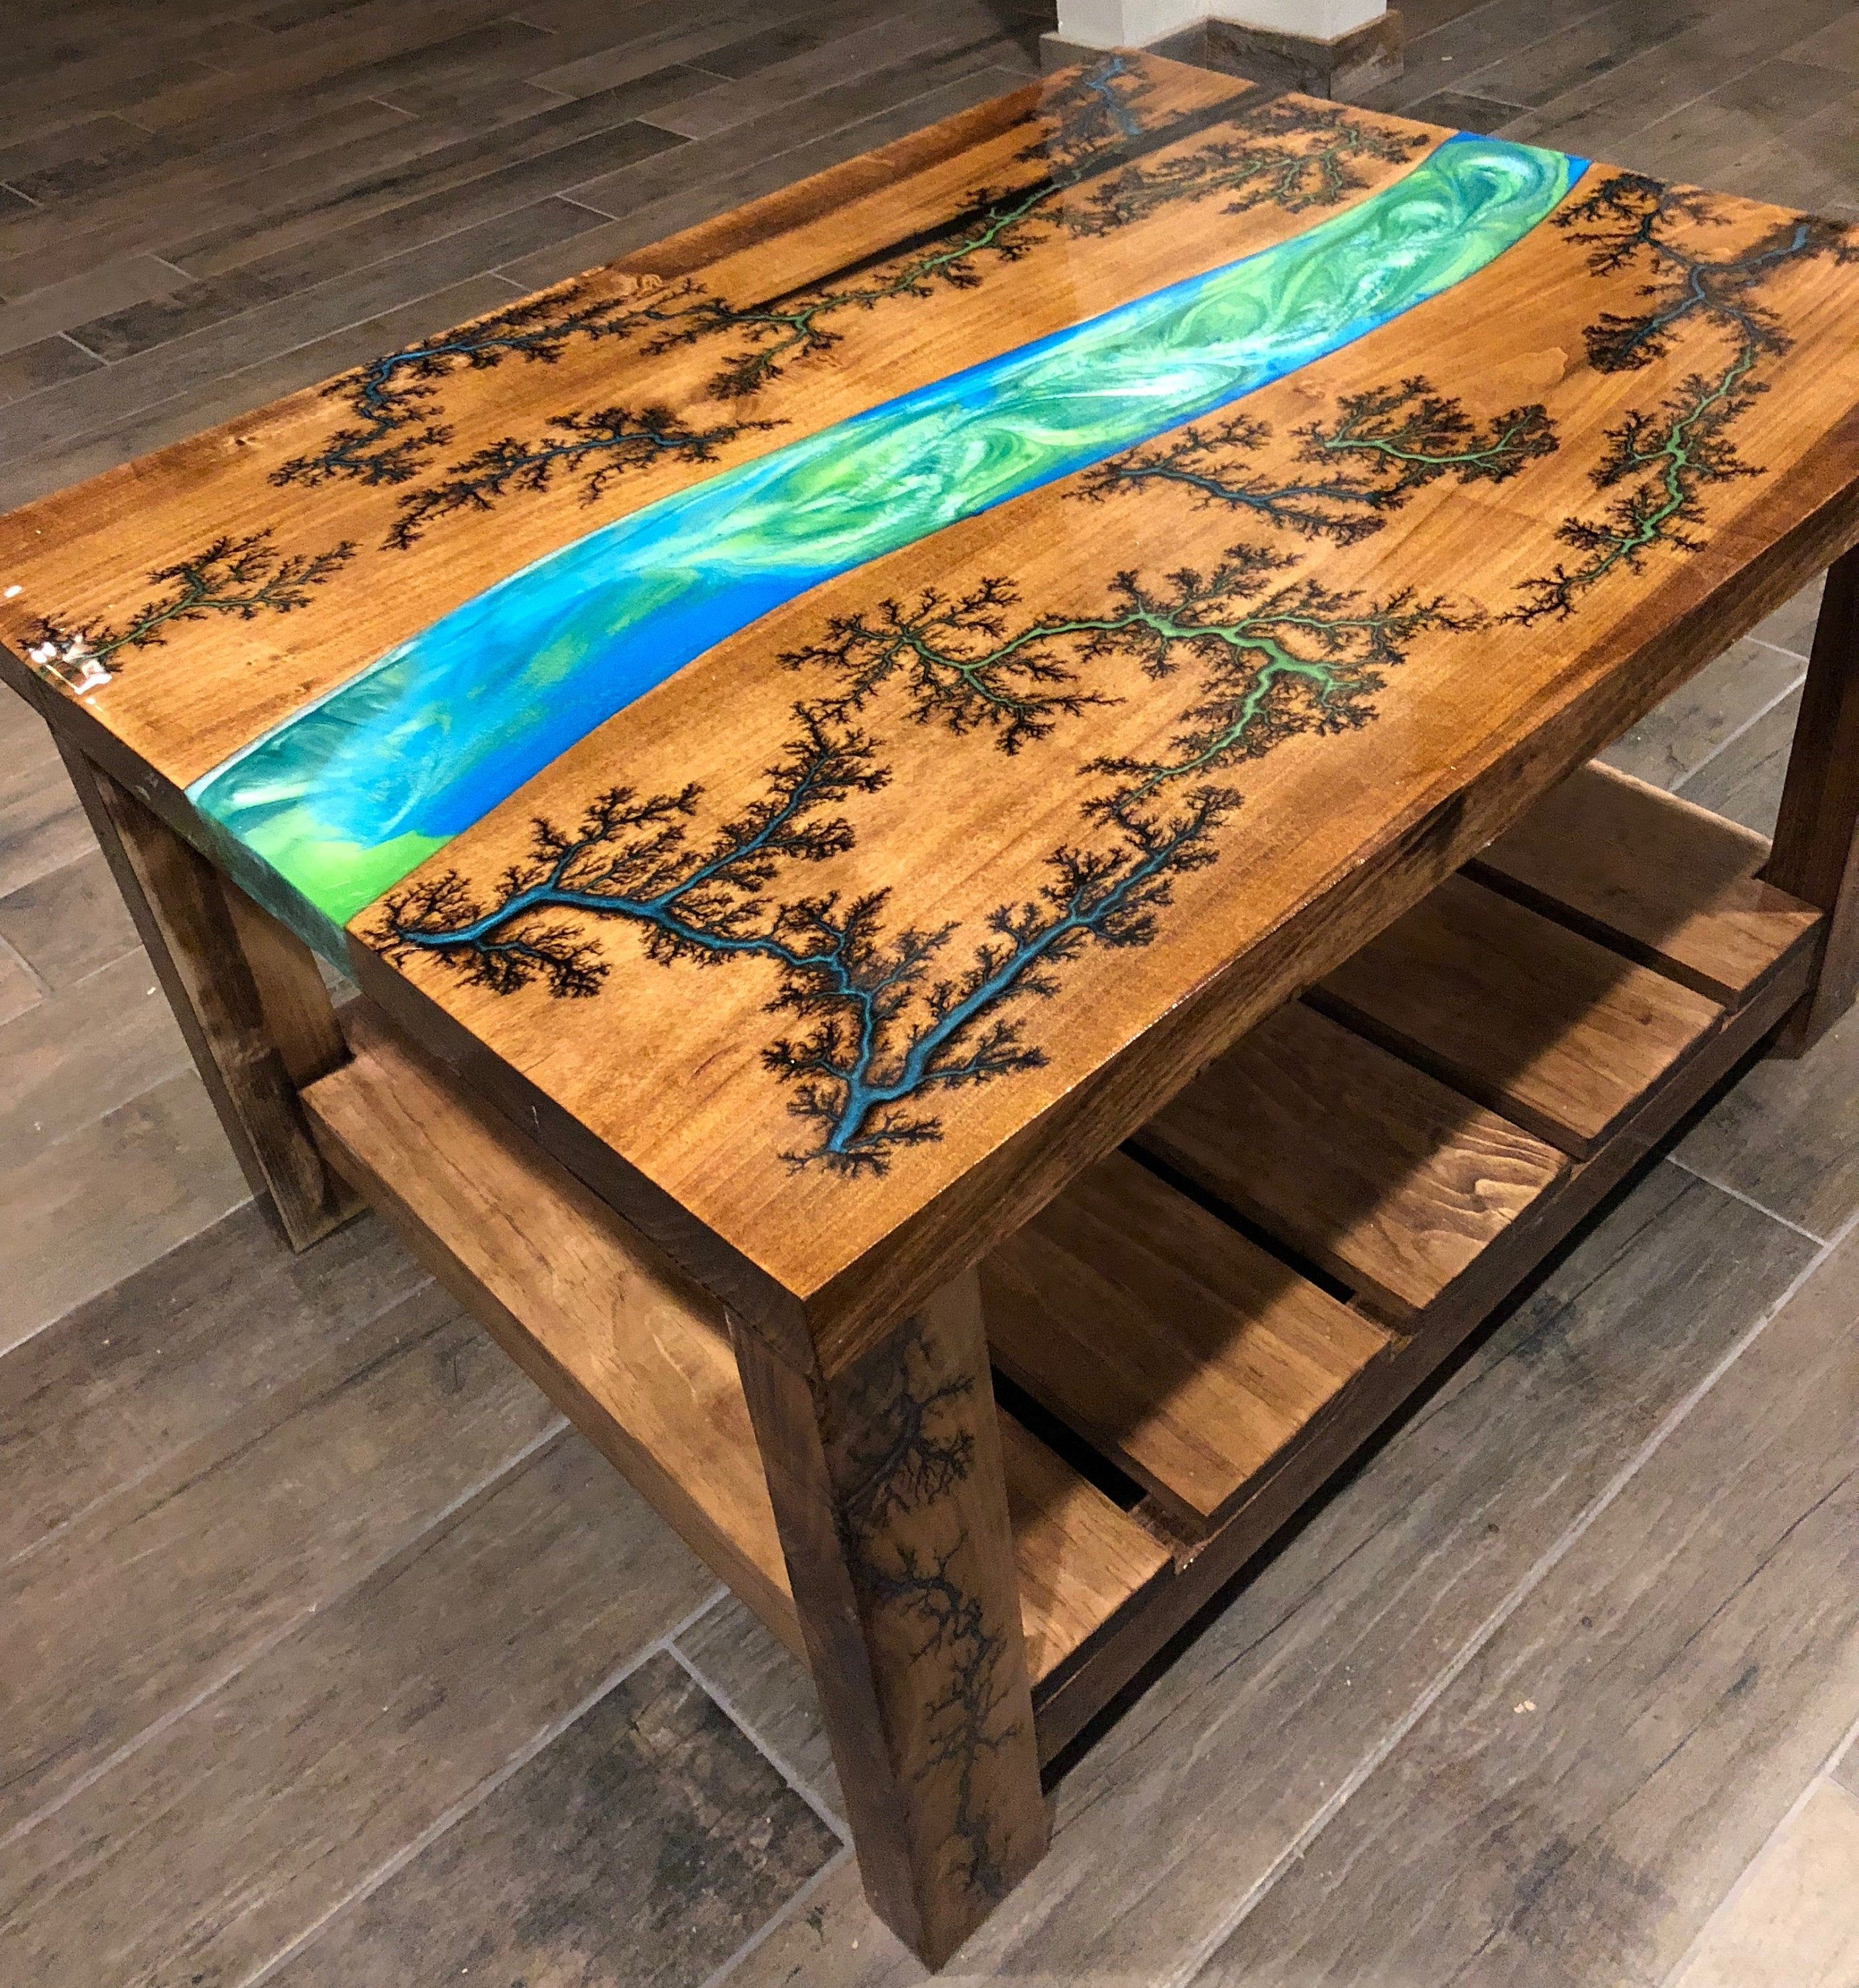 Fractal burn River coffee table in 2020 (With images ...